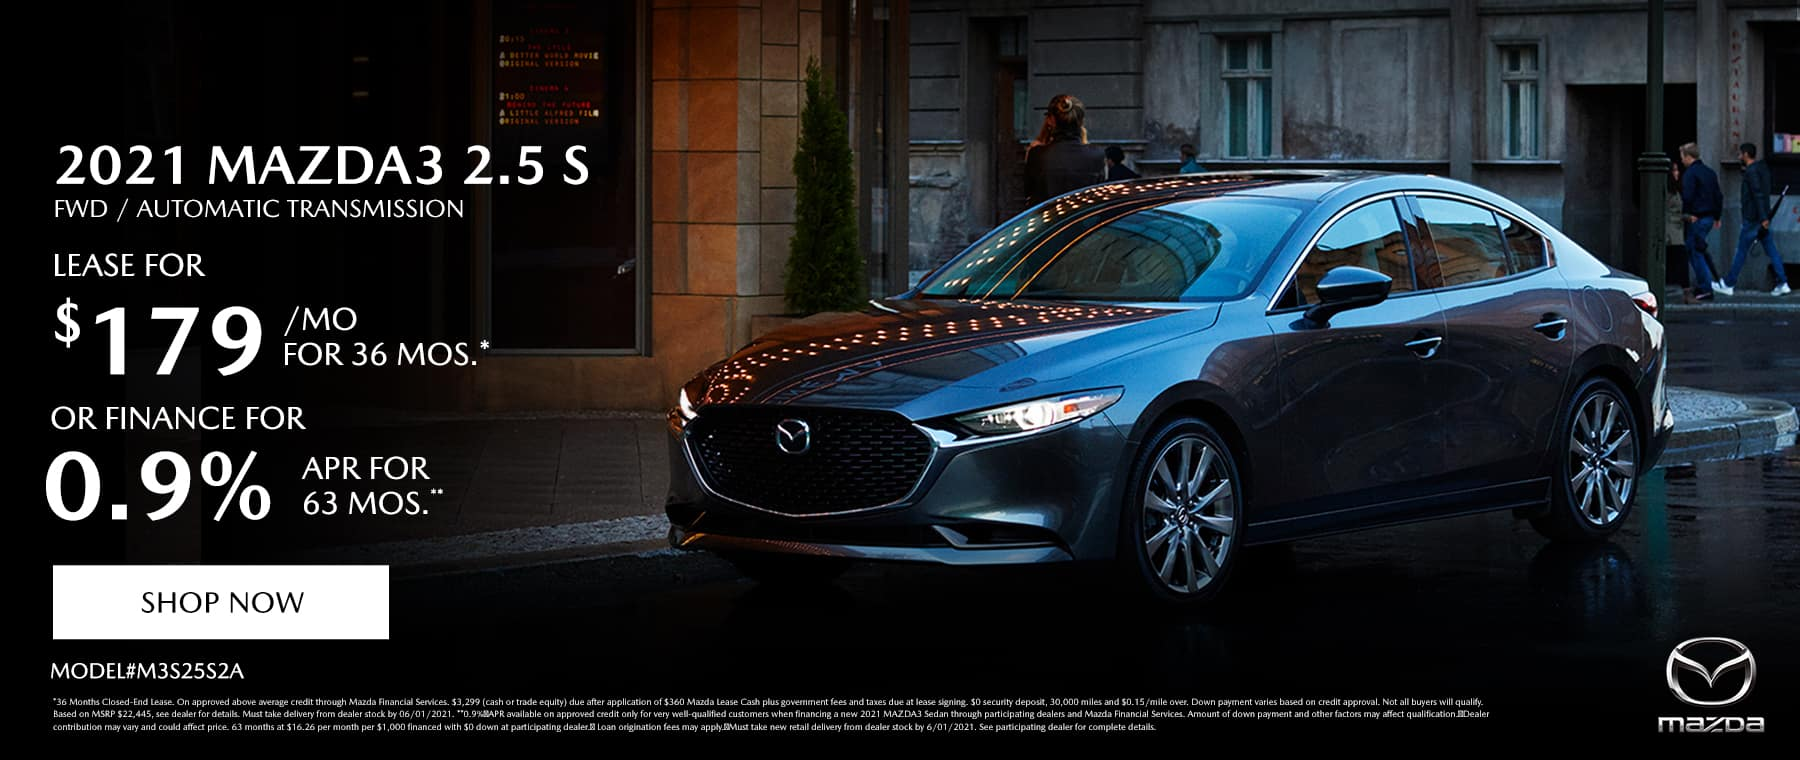 2021 MAZDA MAZDA3 2.5 S FWD AUTOMATIC (MODEL#M3S25S2A) Lease Specials: $179/month @ 36 months* OR Special Finance: 0.9% APR for 63 Months**